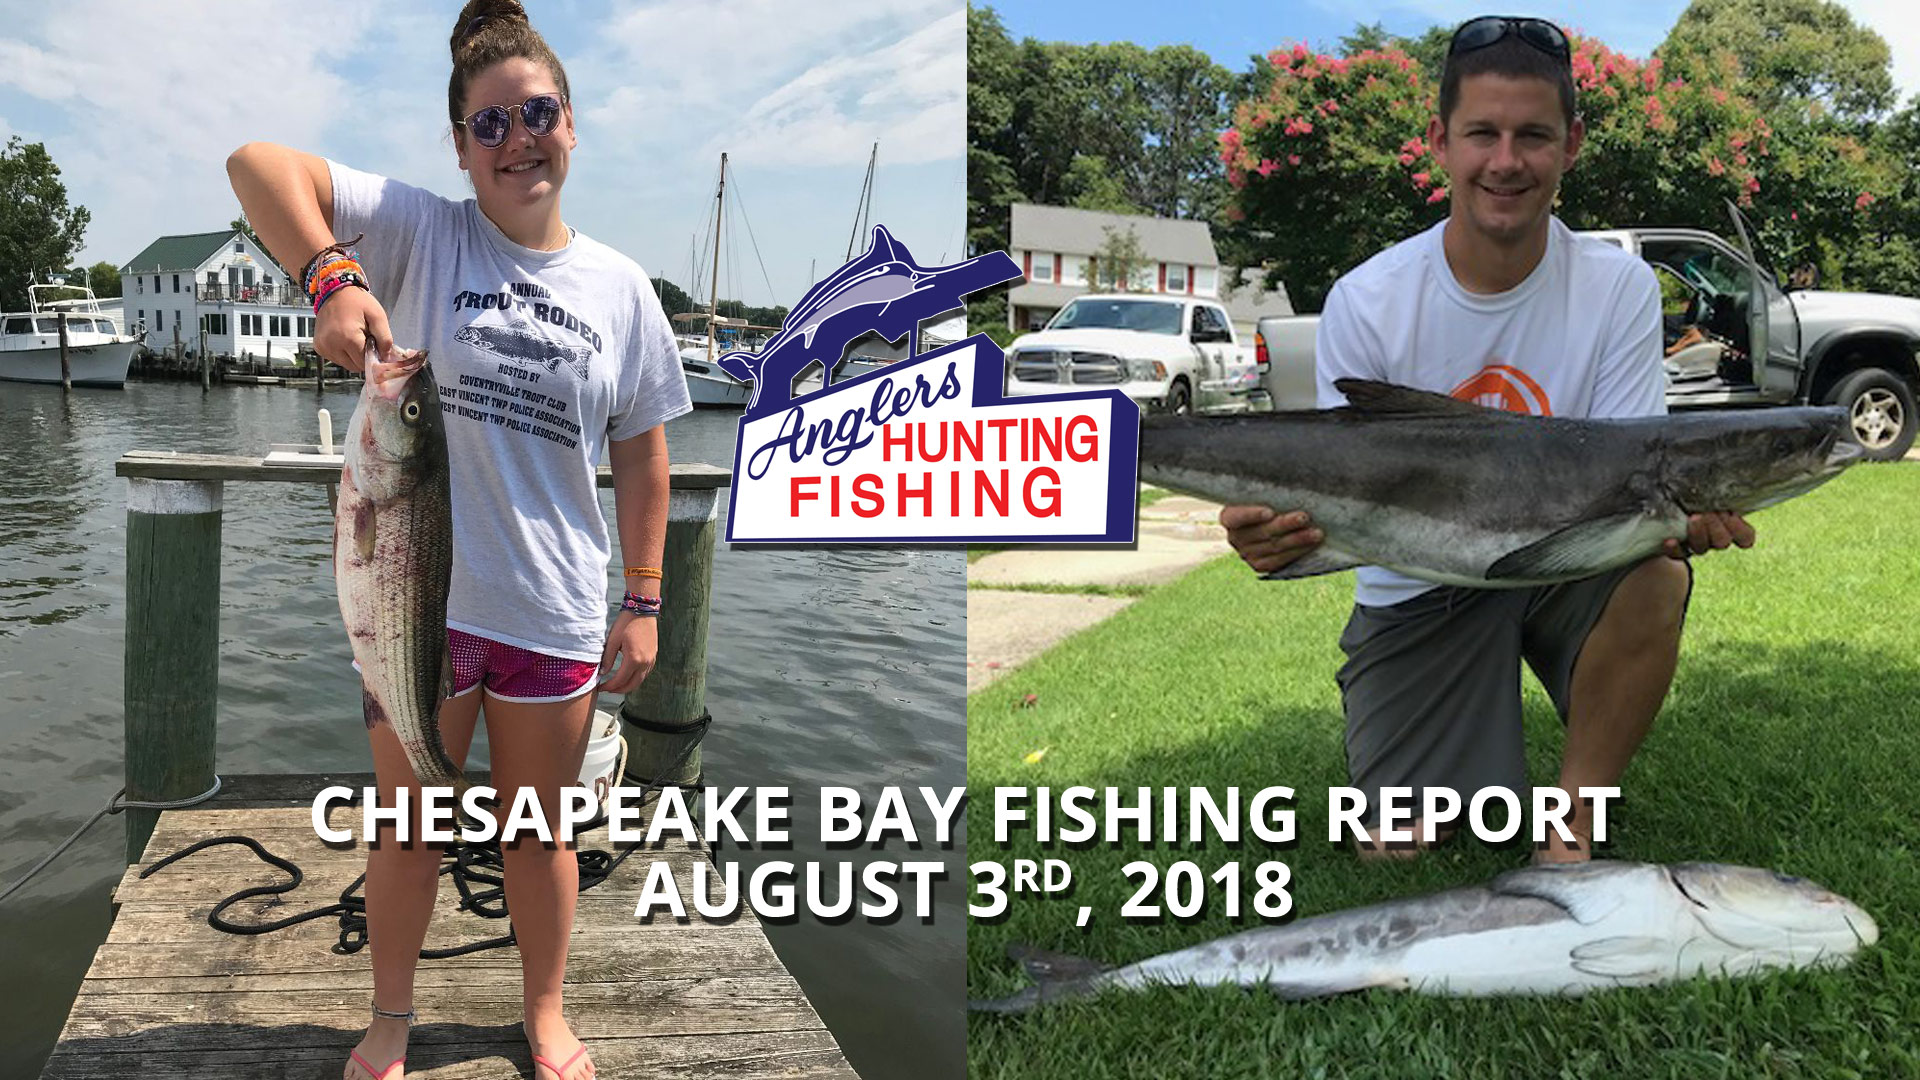 Chesapeake Bay Fishing Report - August 3rd, 2018